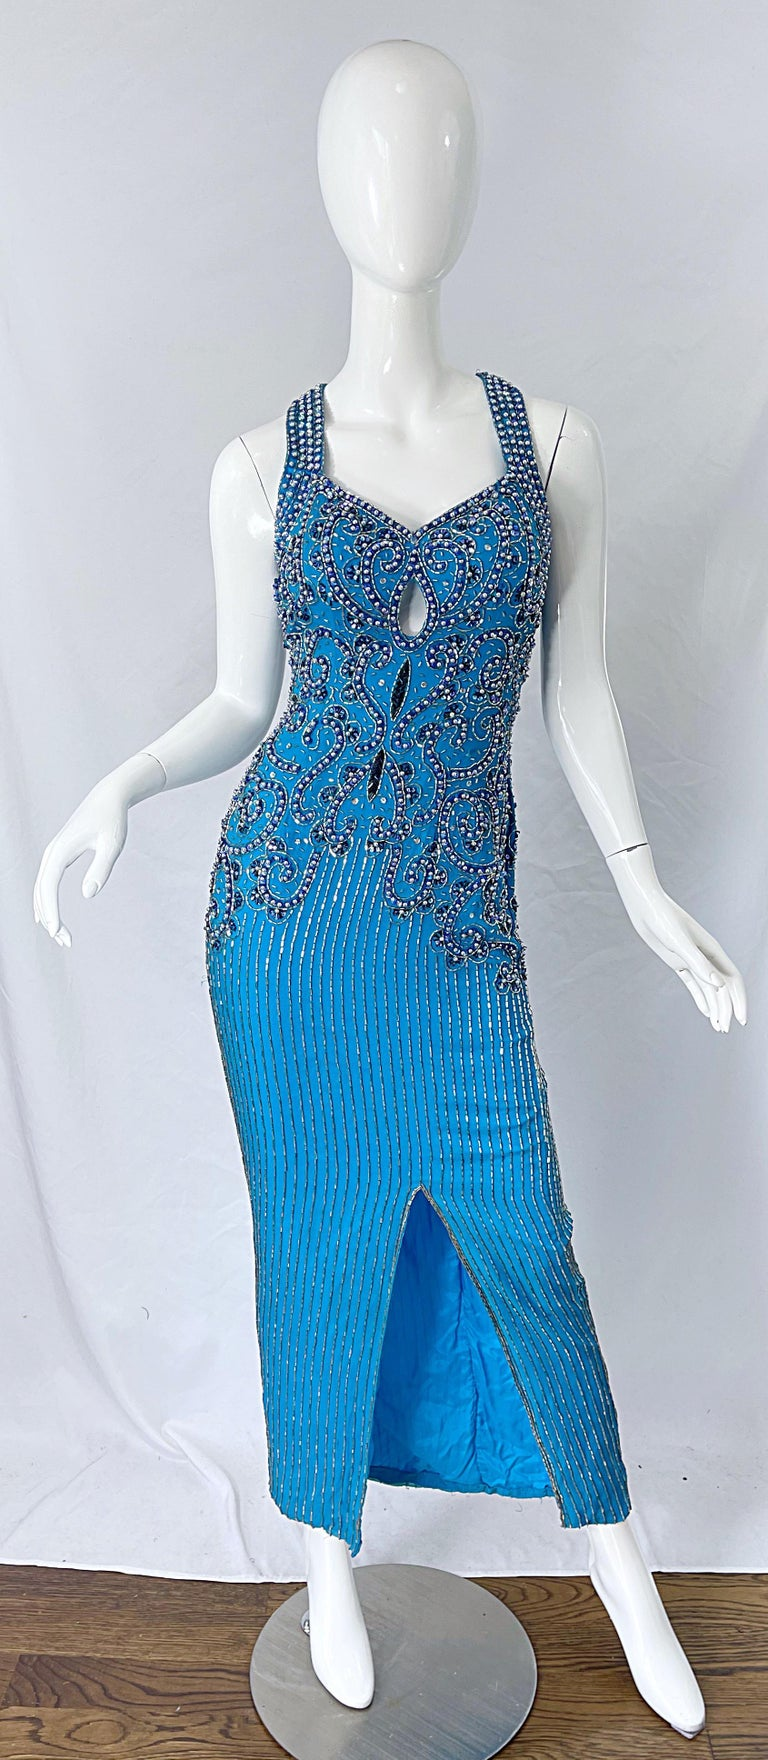 Beautiful 1980s TED LAPIDUS turquoise blue silk beaded evening halter gown ! Features thousands of hand-sewn beads in silver and blue, sequins in blue and pearls throughout the entire dress. Peek-a-boo detail at center bust. Hidden zipper up the